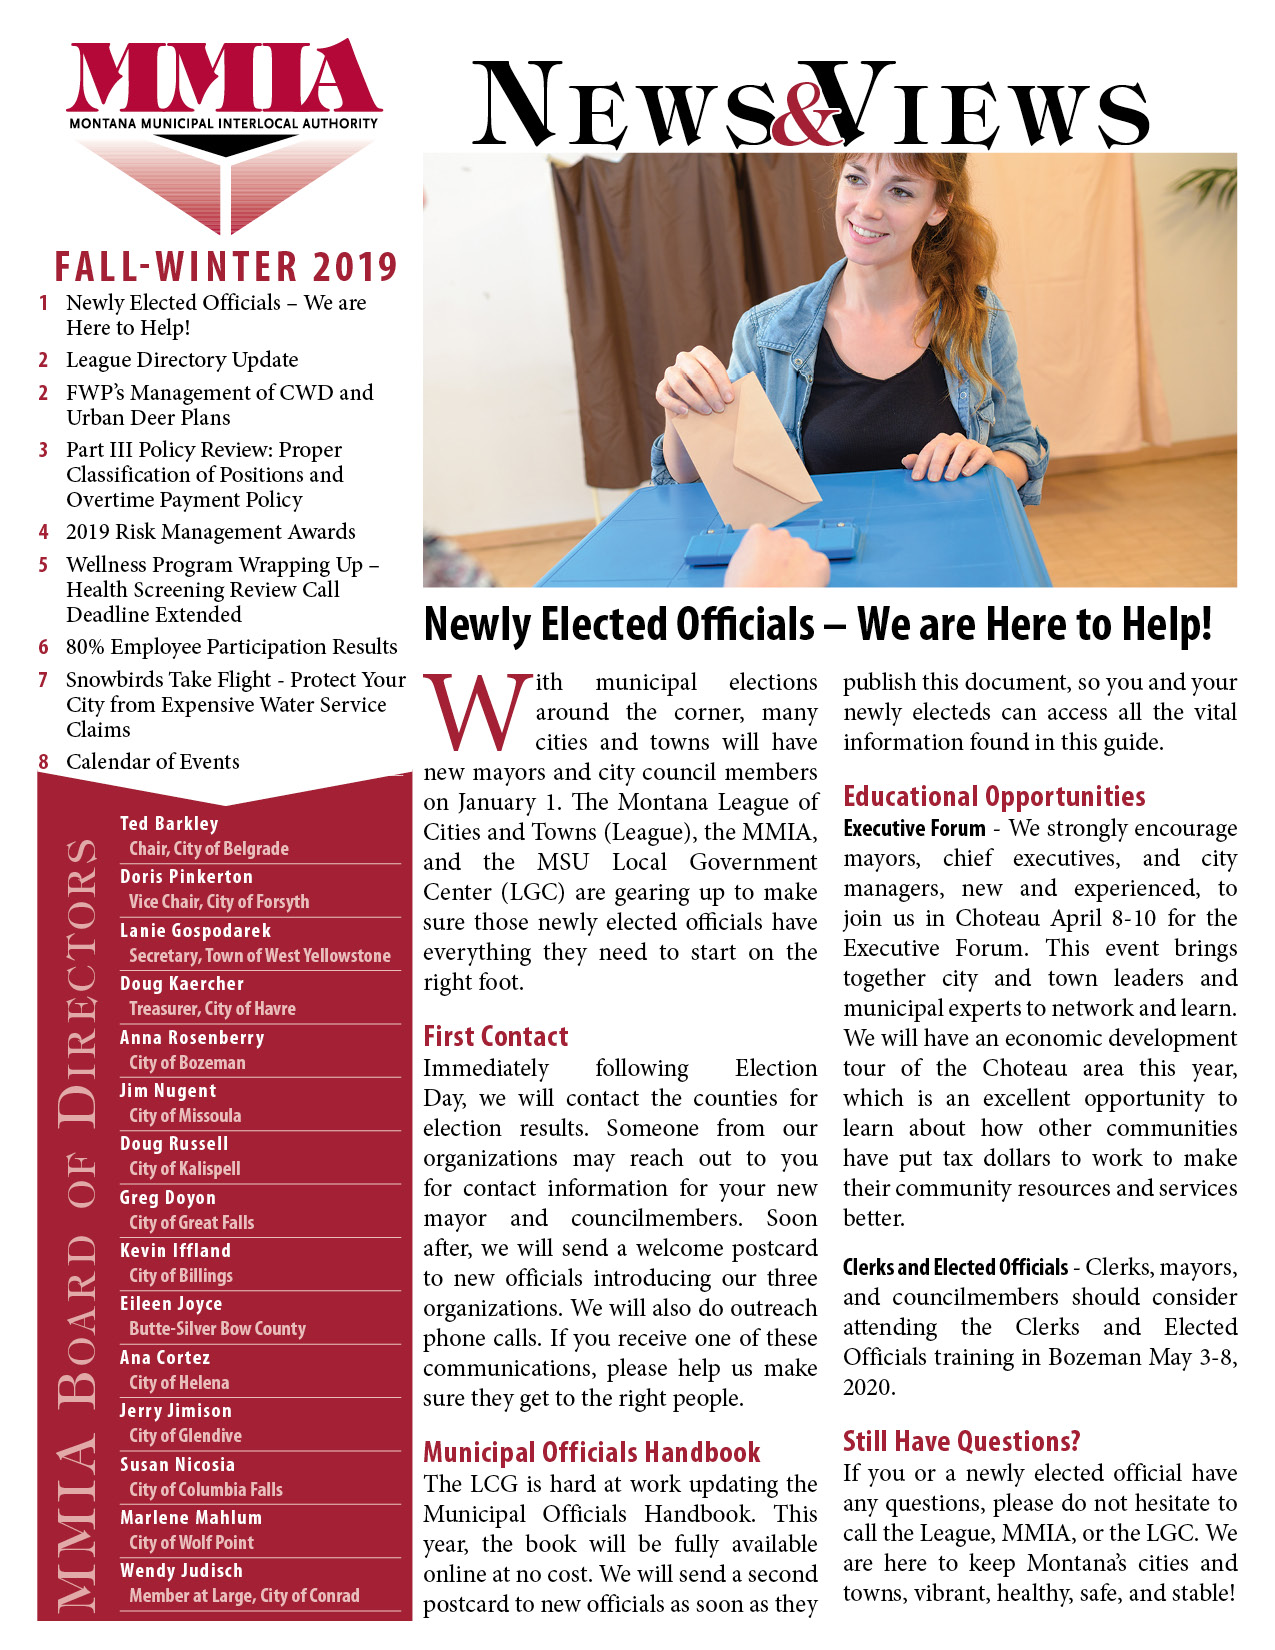 MMIA Fall/Winter Newsletter, 2019